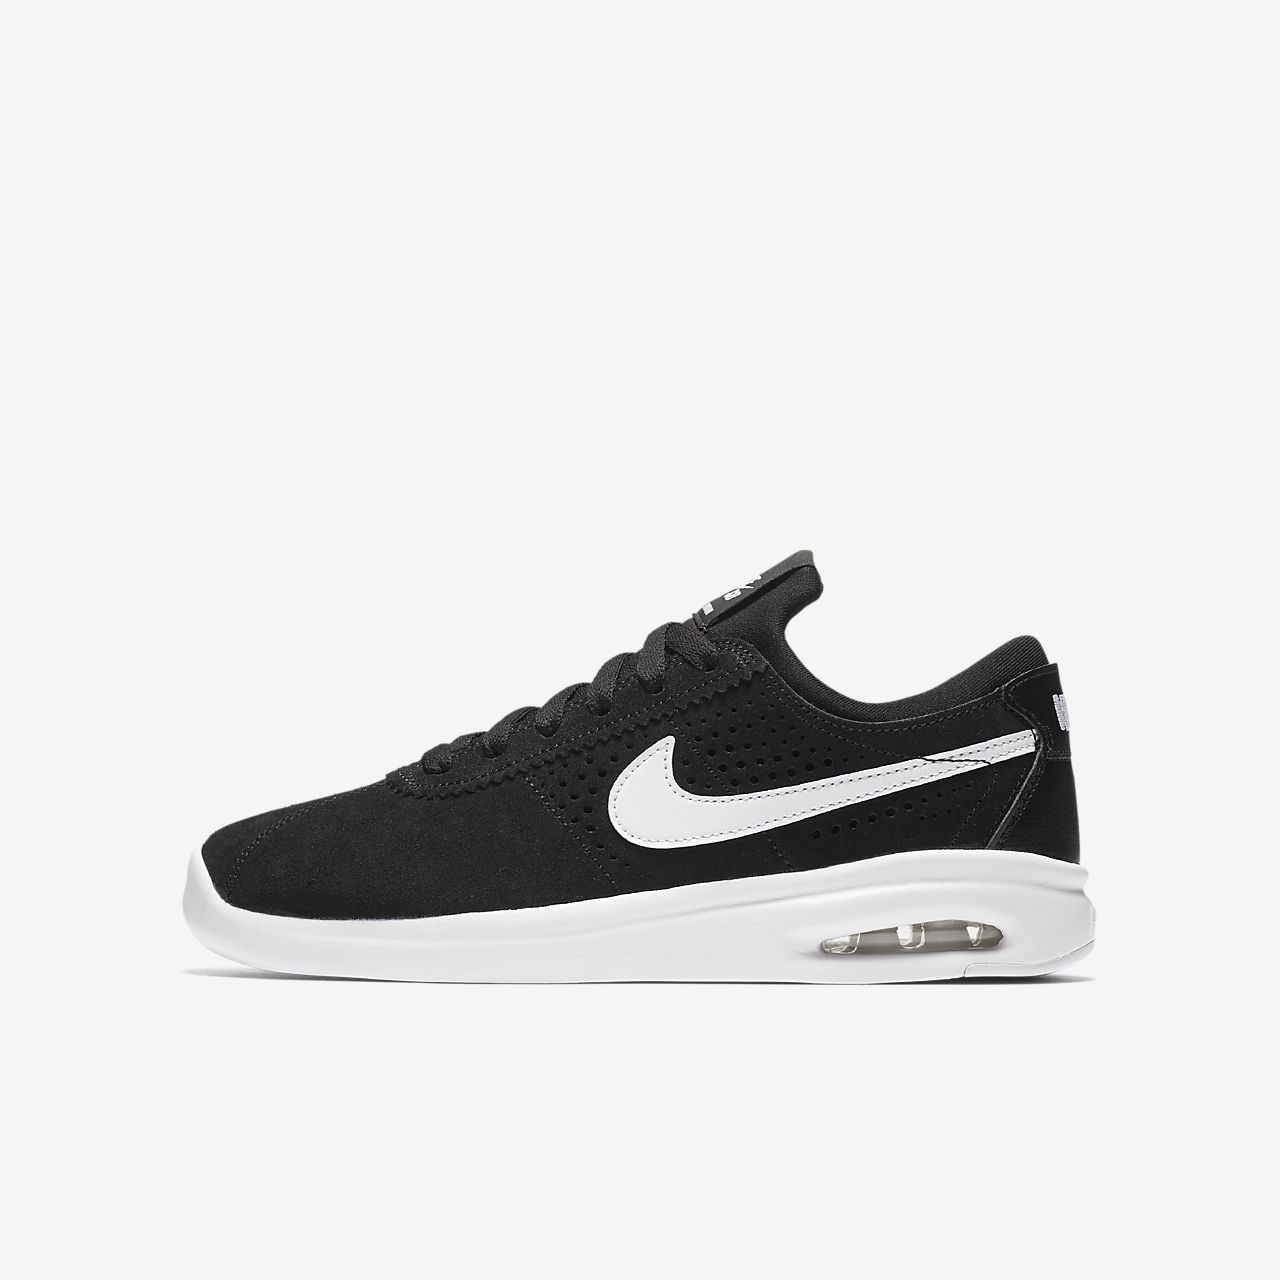 Nike SB Stefan Janoski Max Boys Skateboarding Shoes Black/White wF1549K